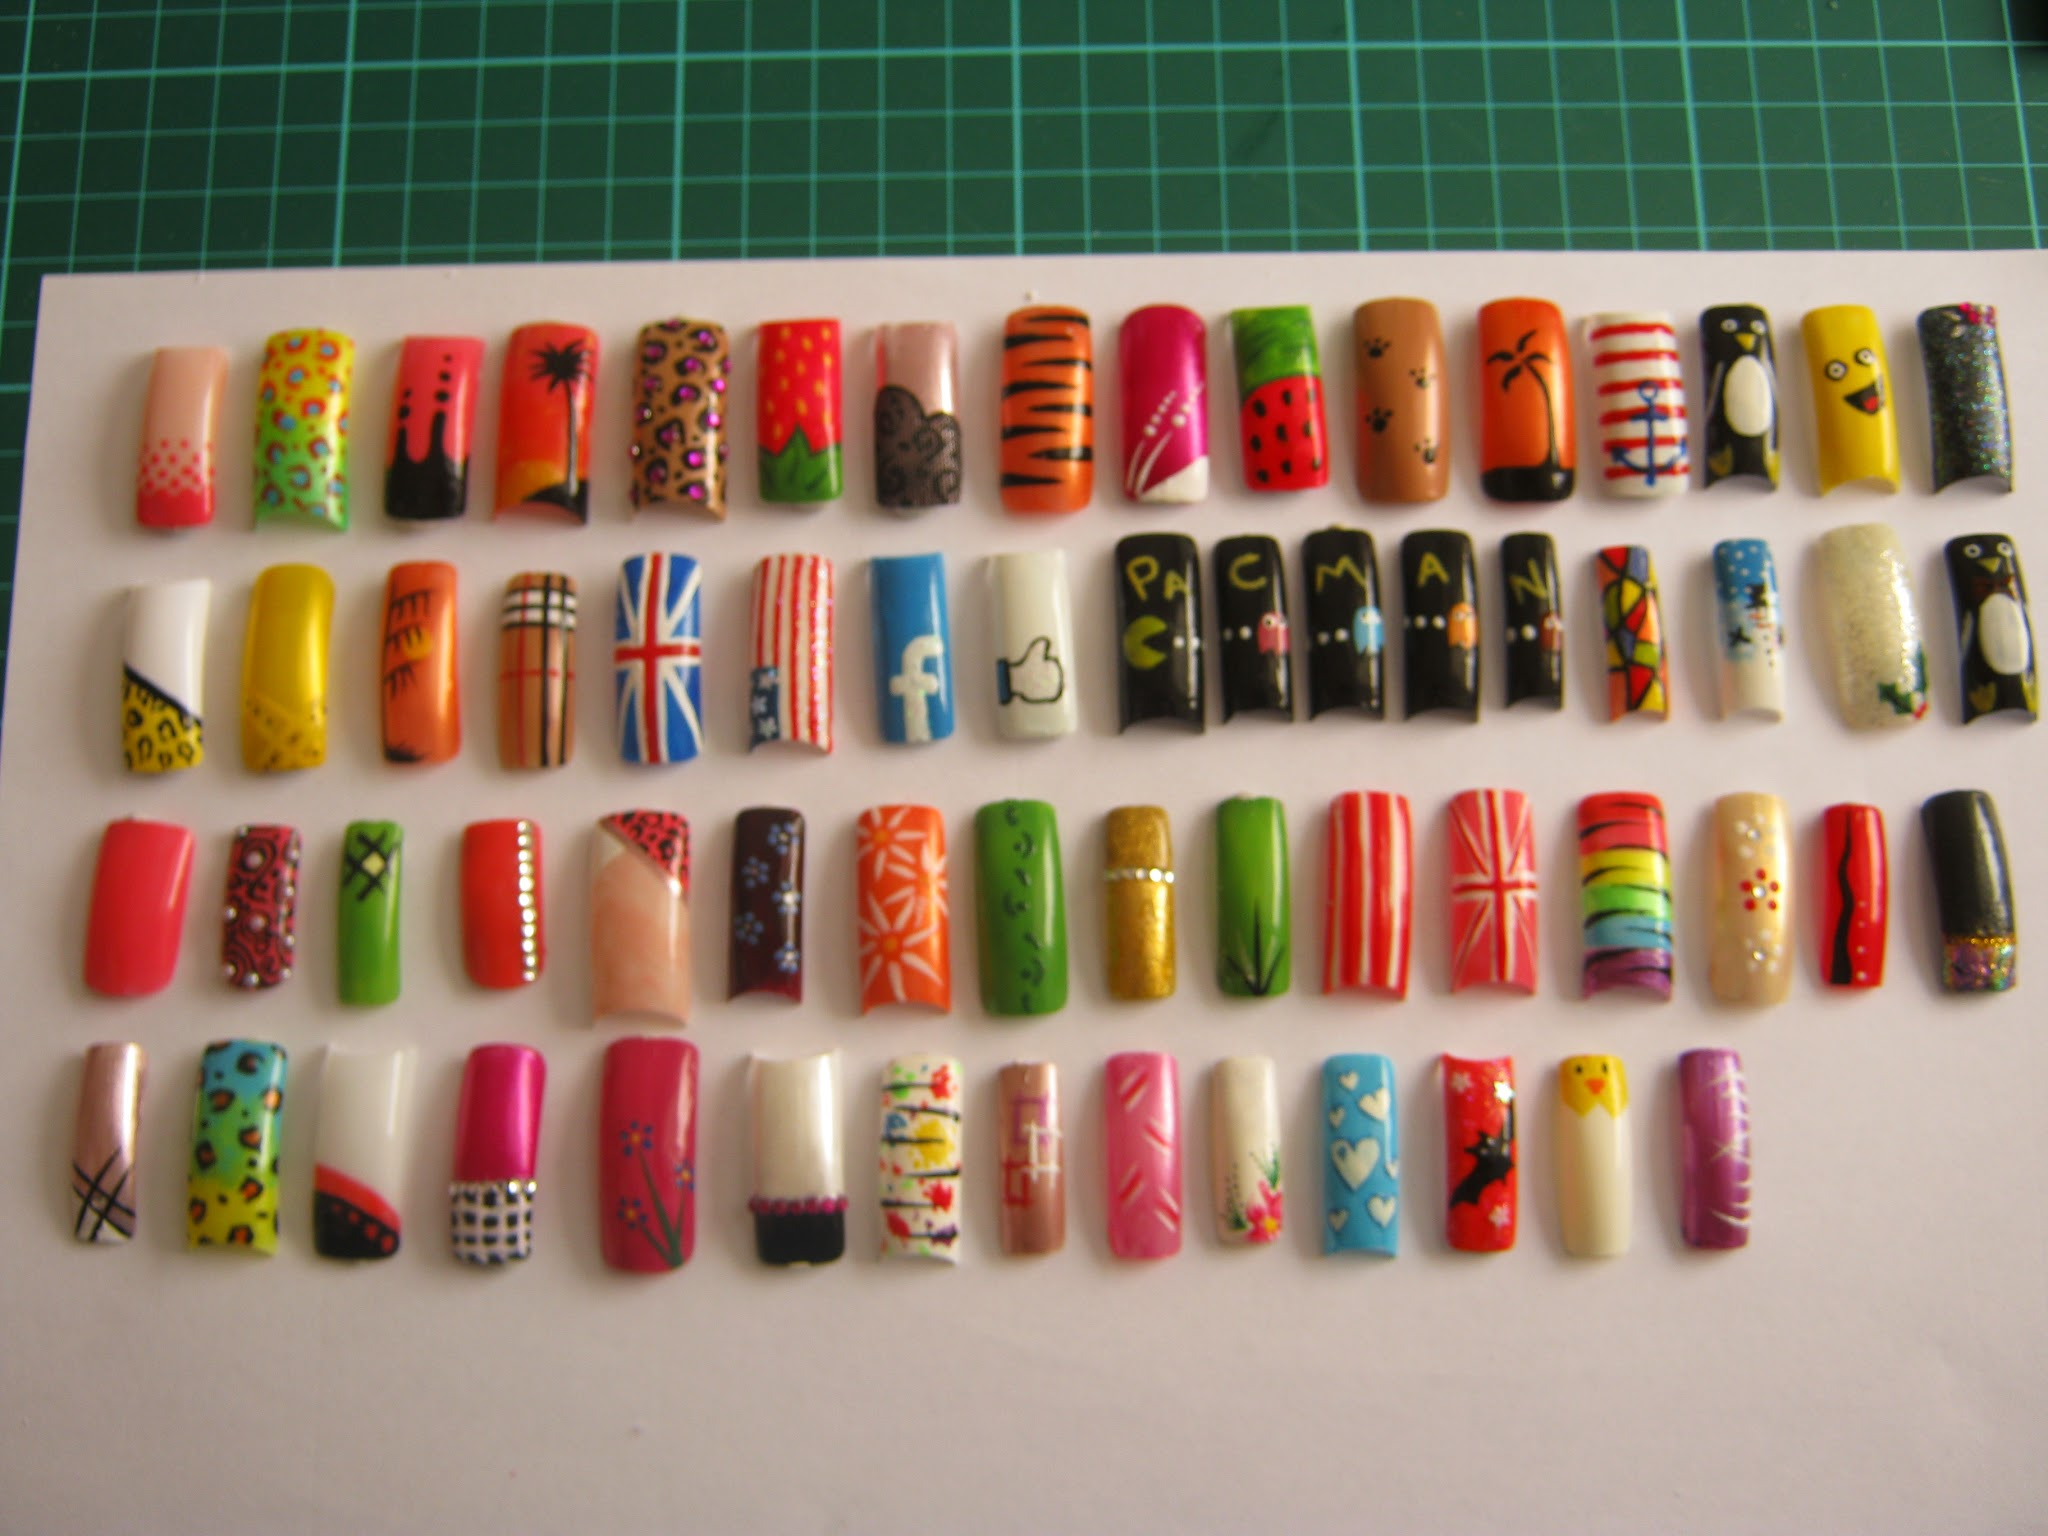 Cool Nail Design Ideas 15 nail design ideas that are actually easy Nail Design Nail Art Designs Tumblr Nail Art Designs Tumblr